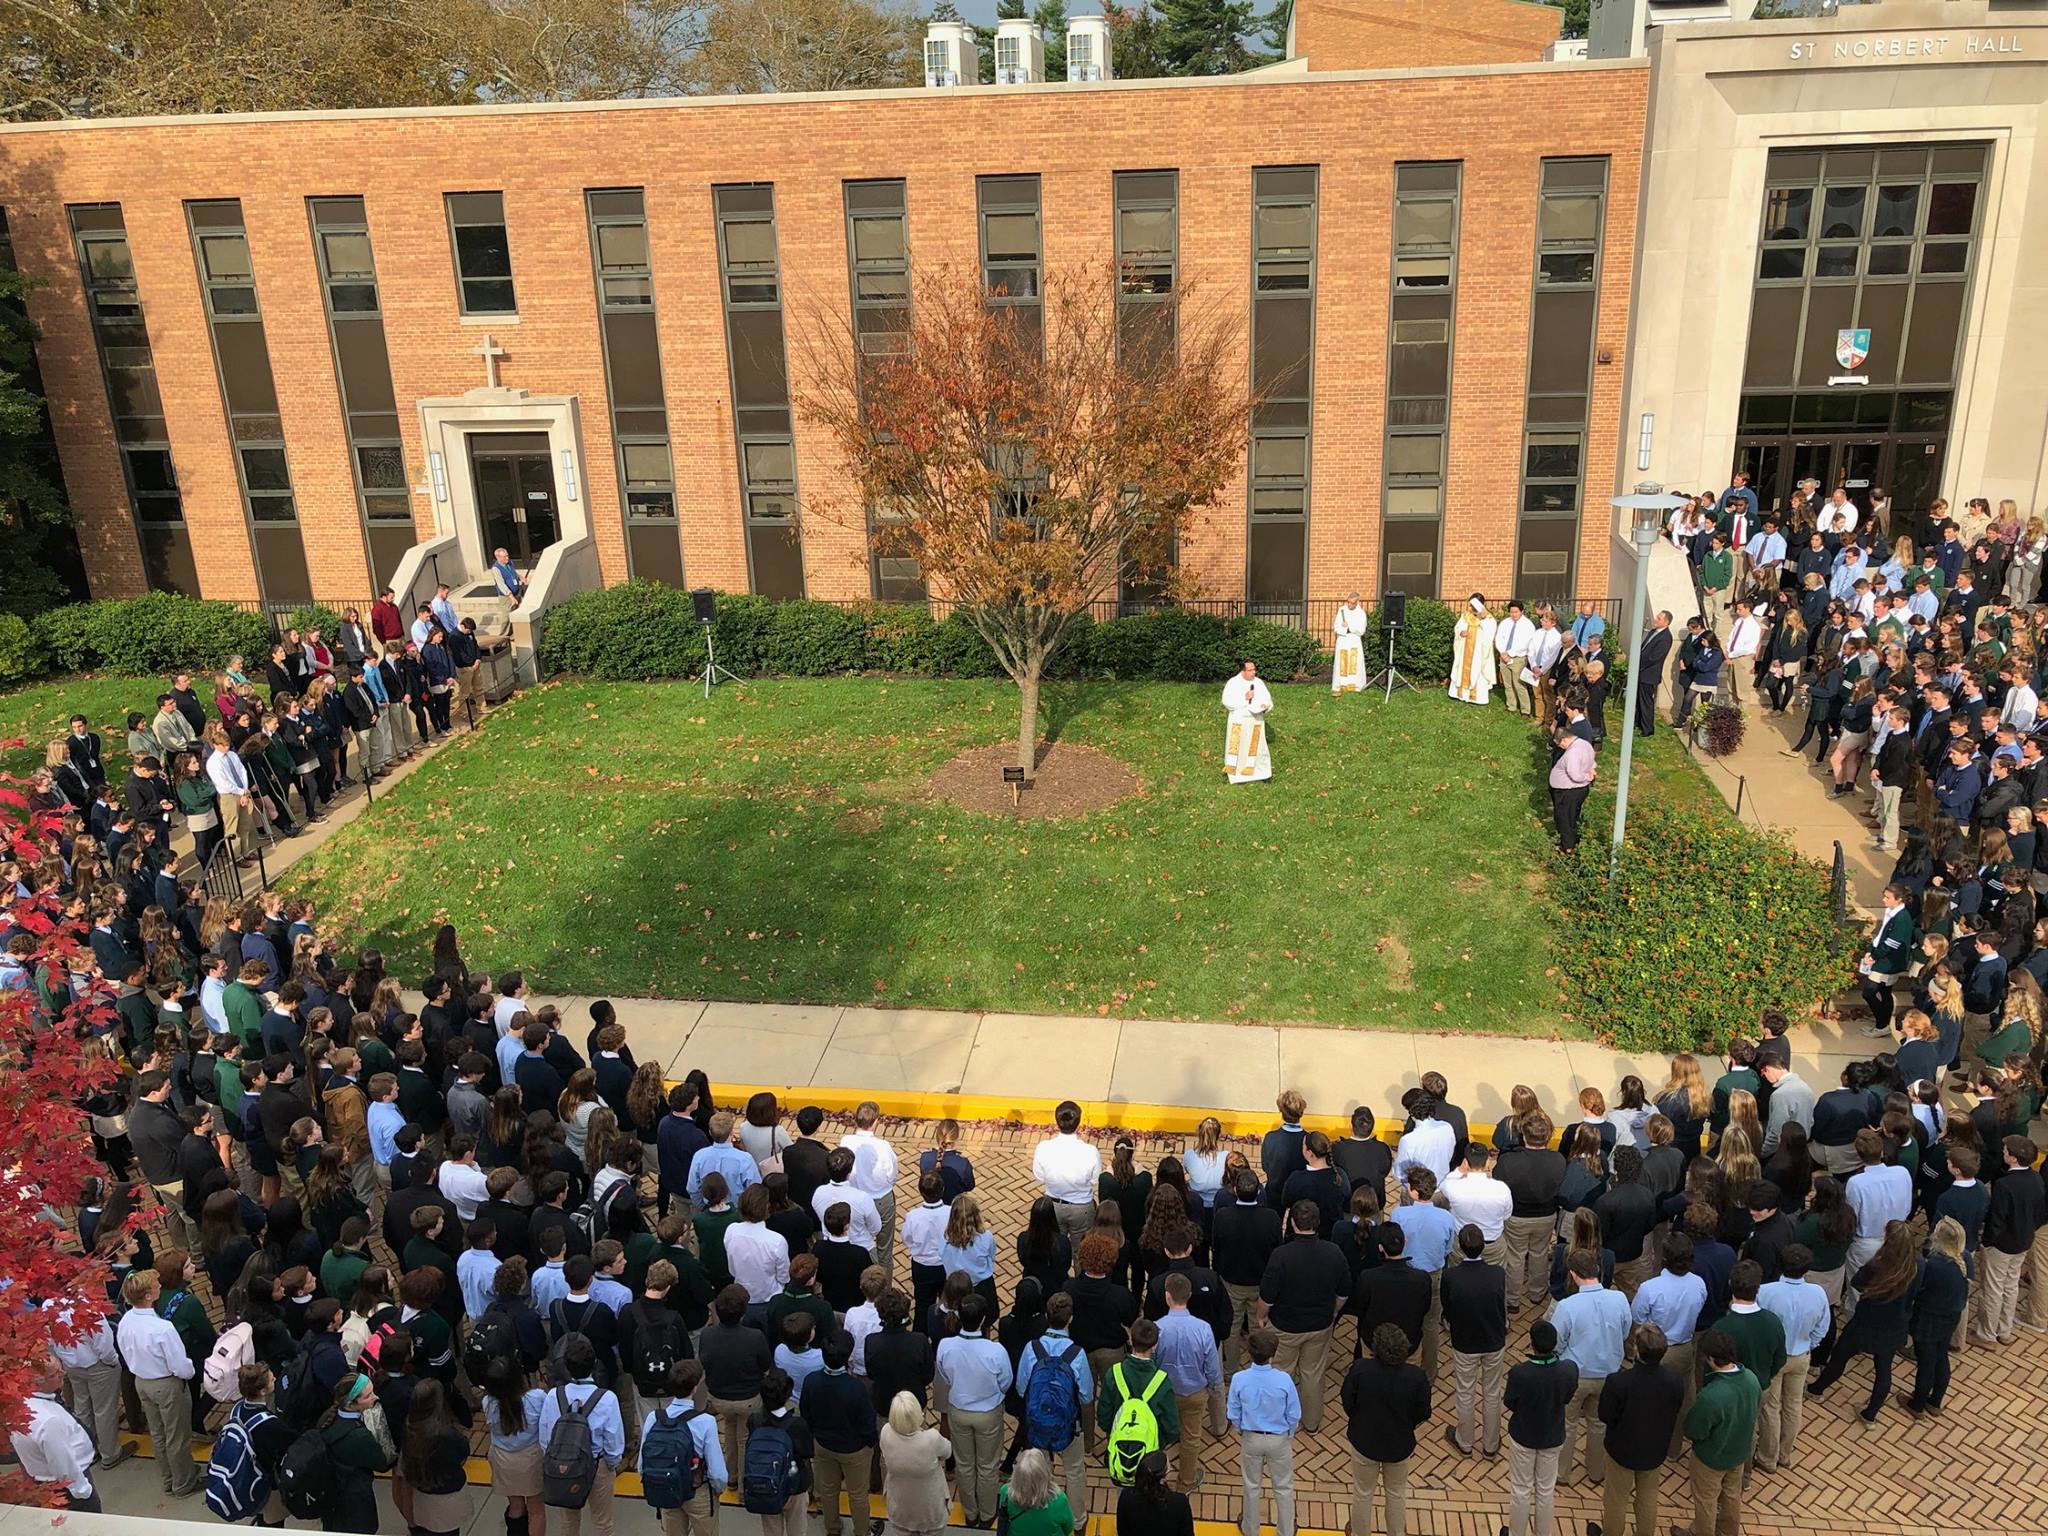 Dedication of the Zelkova Tree in honor of Anthony